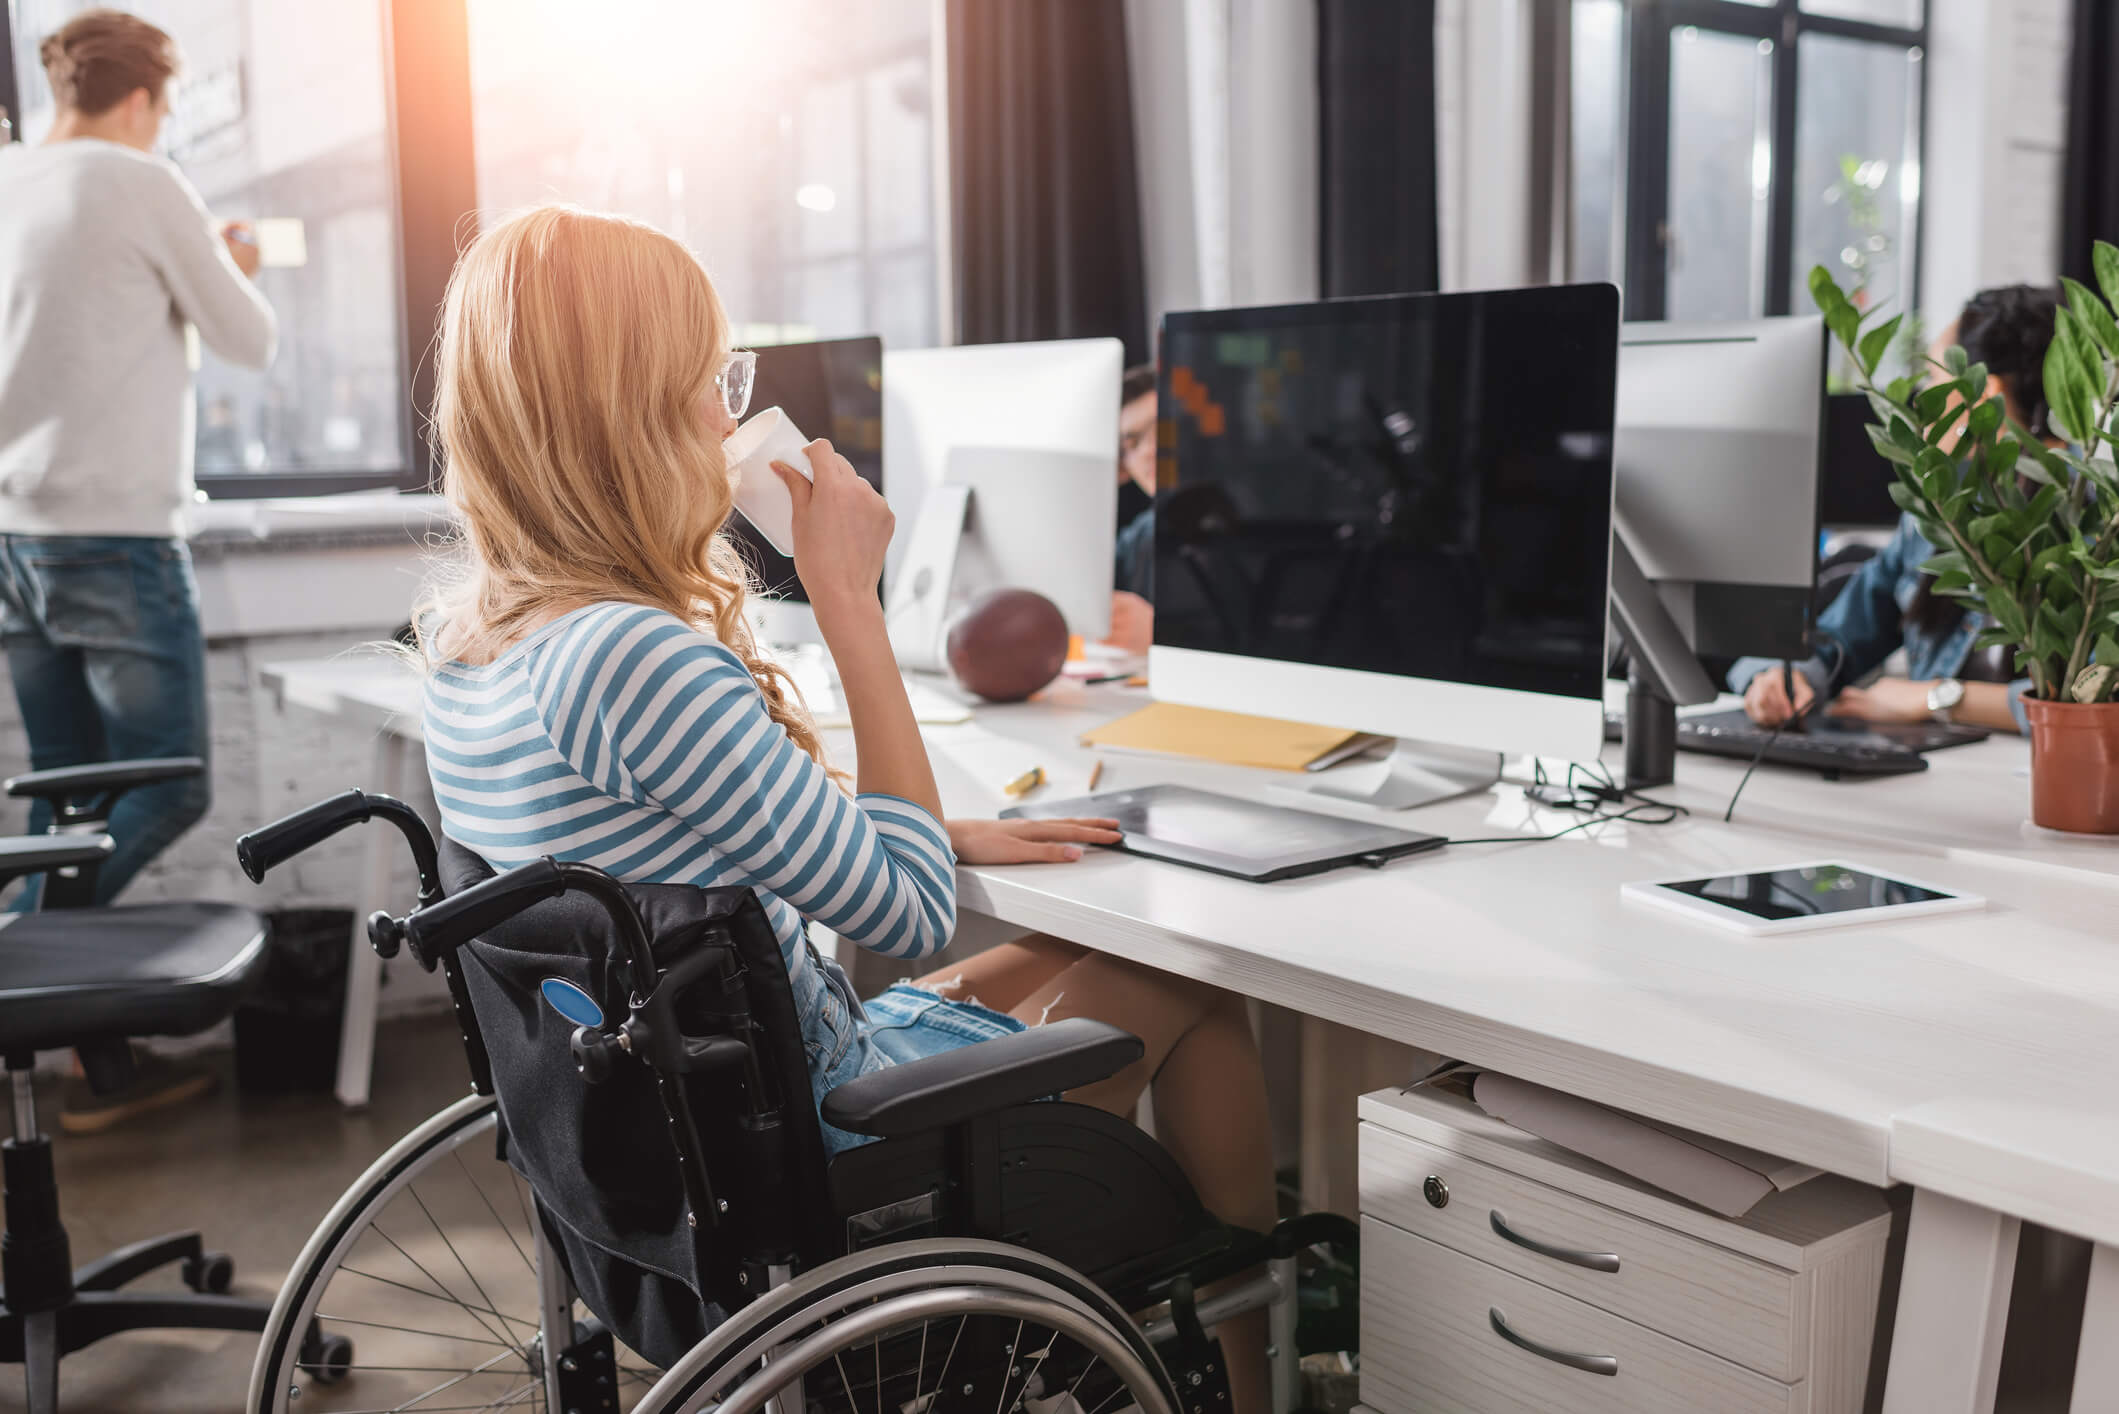 Roeschke Law, LLC discusses the best places to work for disability inclusion.